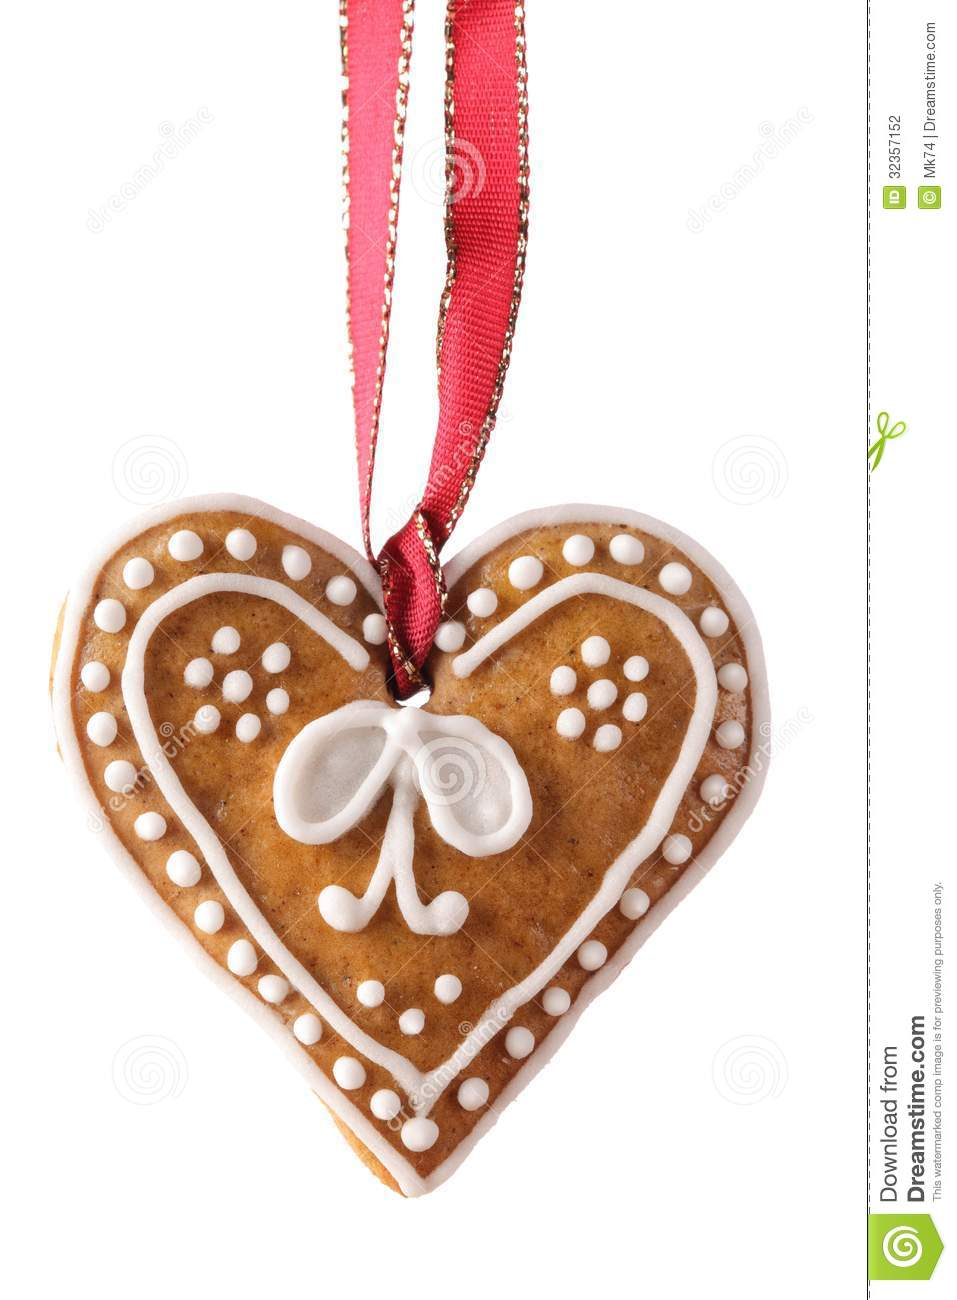 Gingerbread heart stock photo image of ribbon cookie